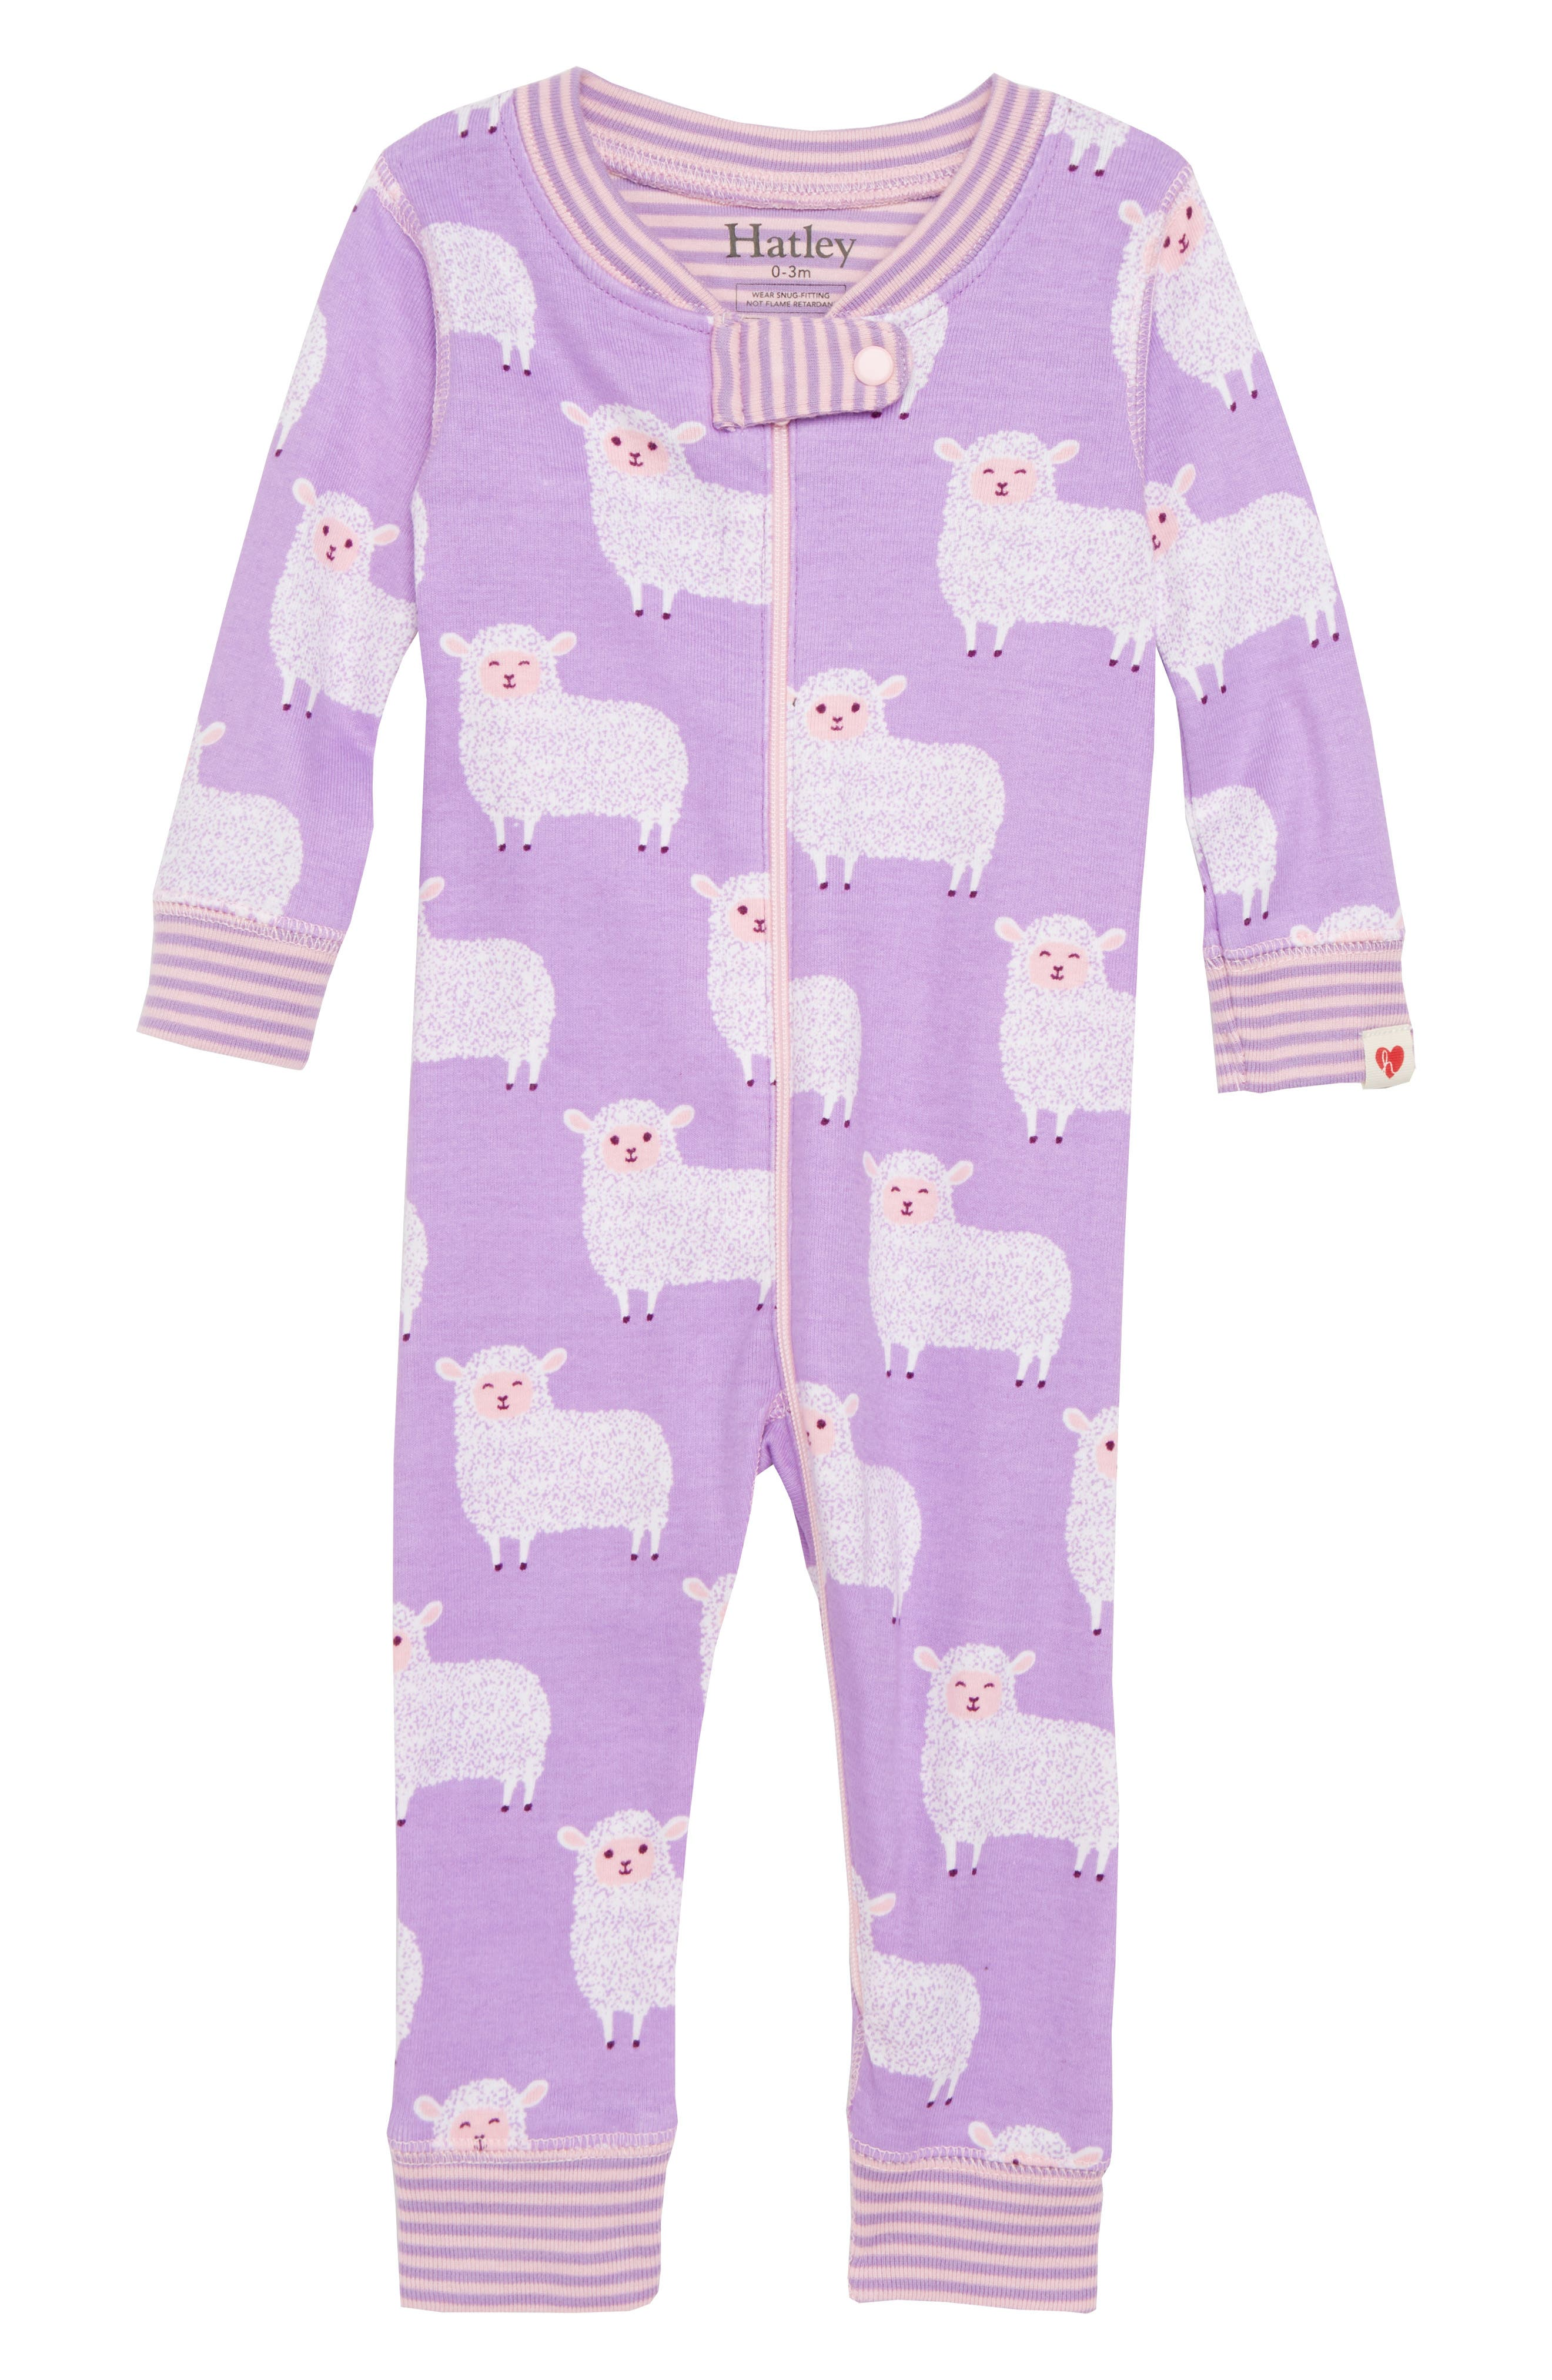 Counting Sheep Fitted One-Piece Pajamas,                         Main,                         color, 500